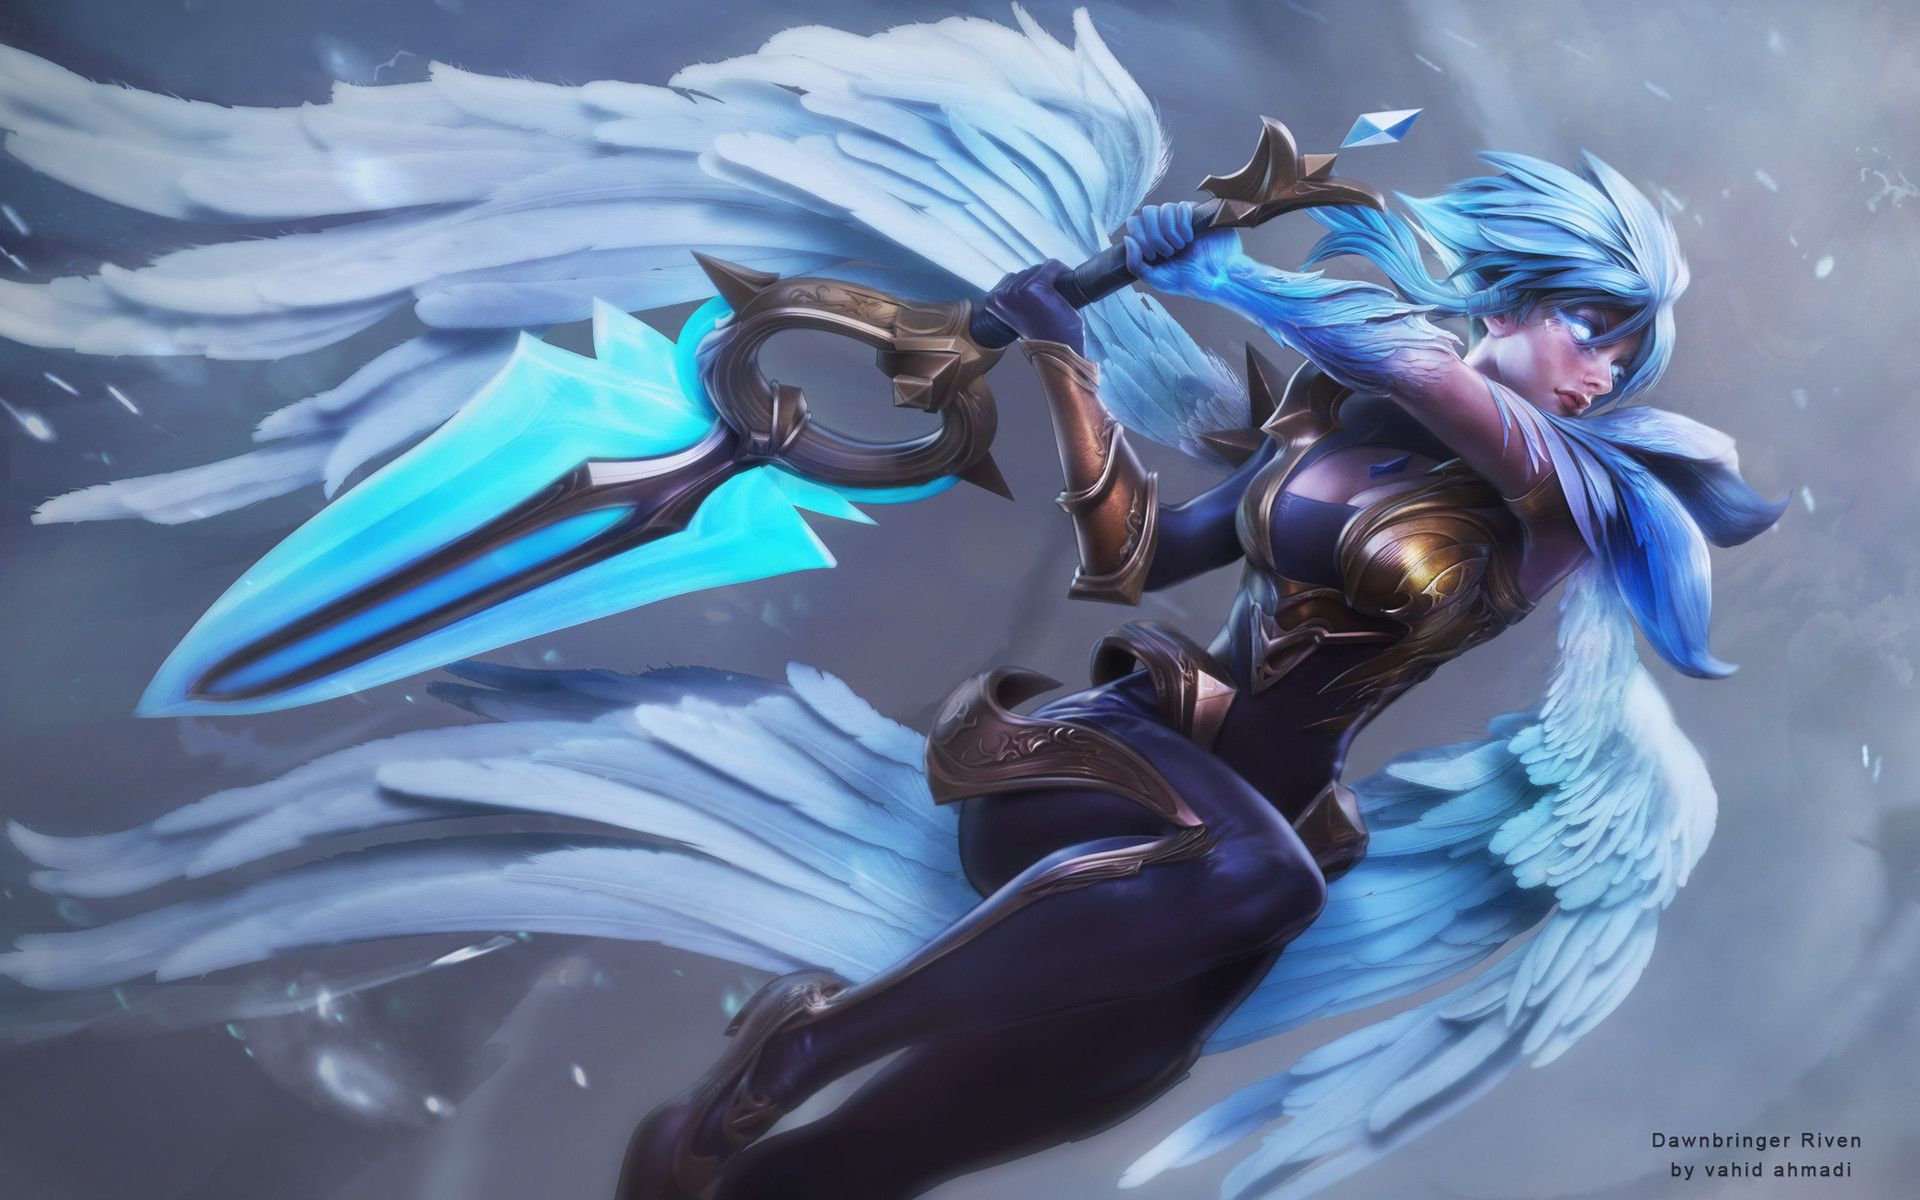 Hello Guys Dawnbringer Riven Is Completely Modeled And Rendered